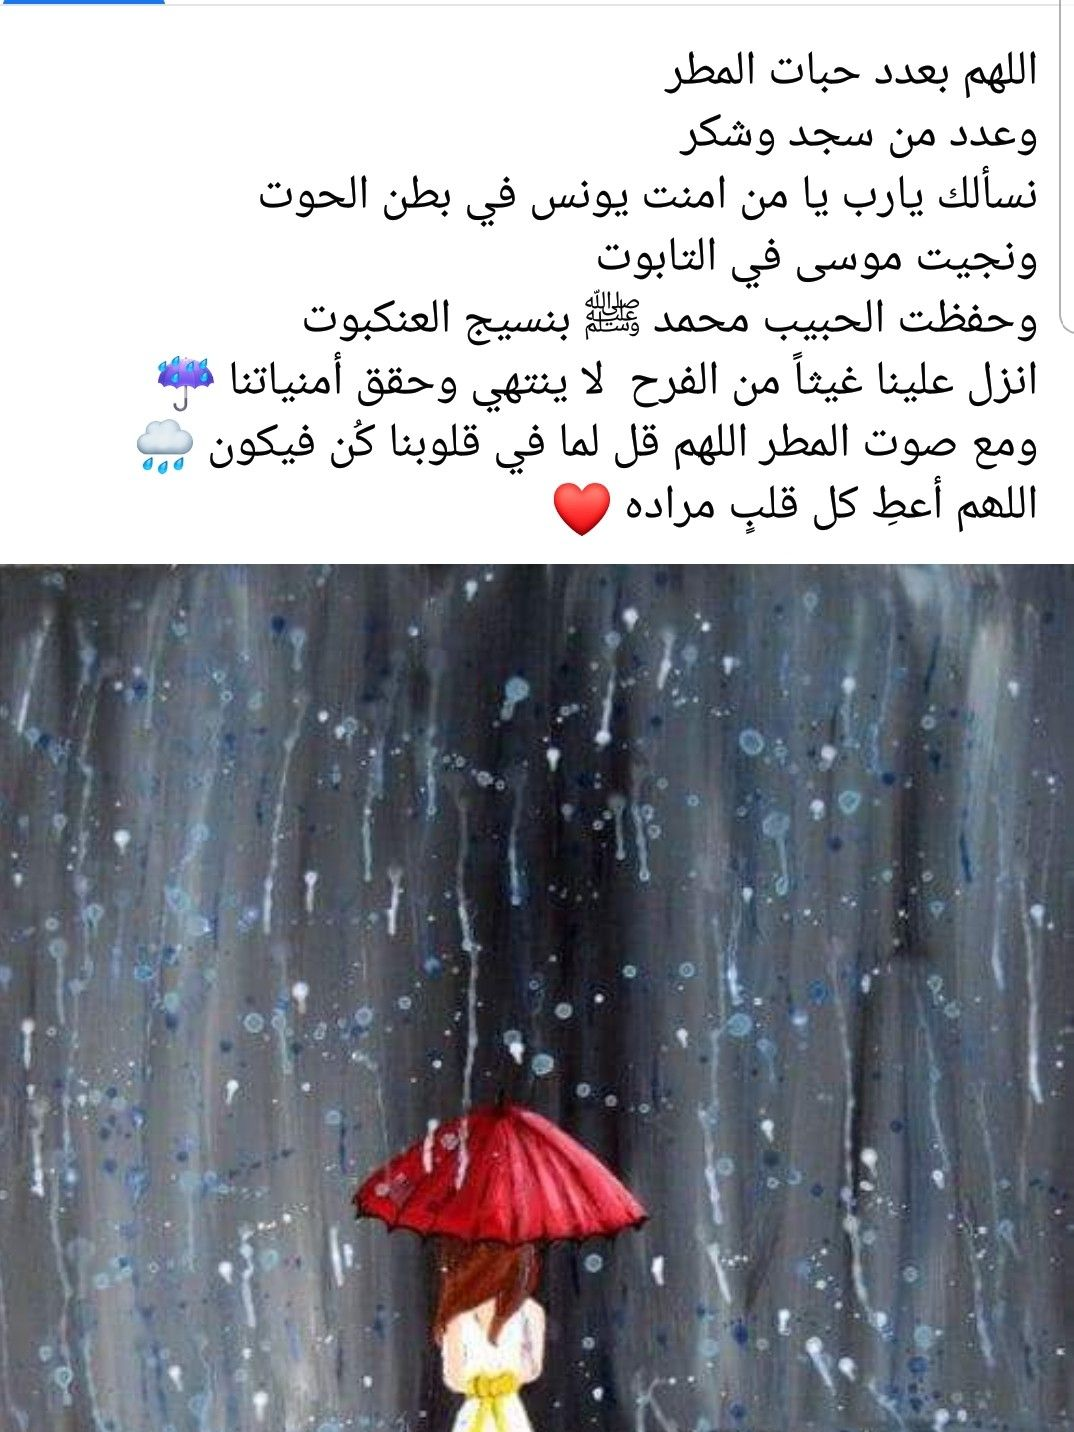 Pin By Meme On أدعية Arabic Love Quotes Islamic Quotes Love Quotes